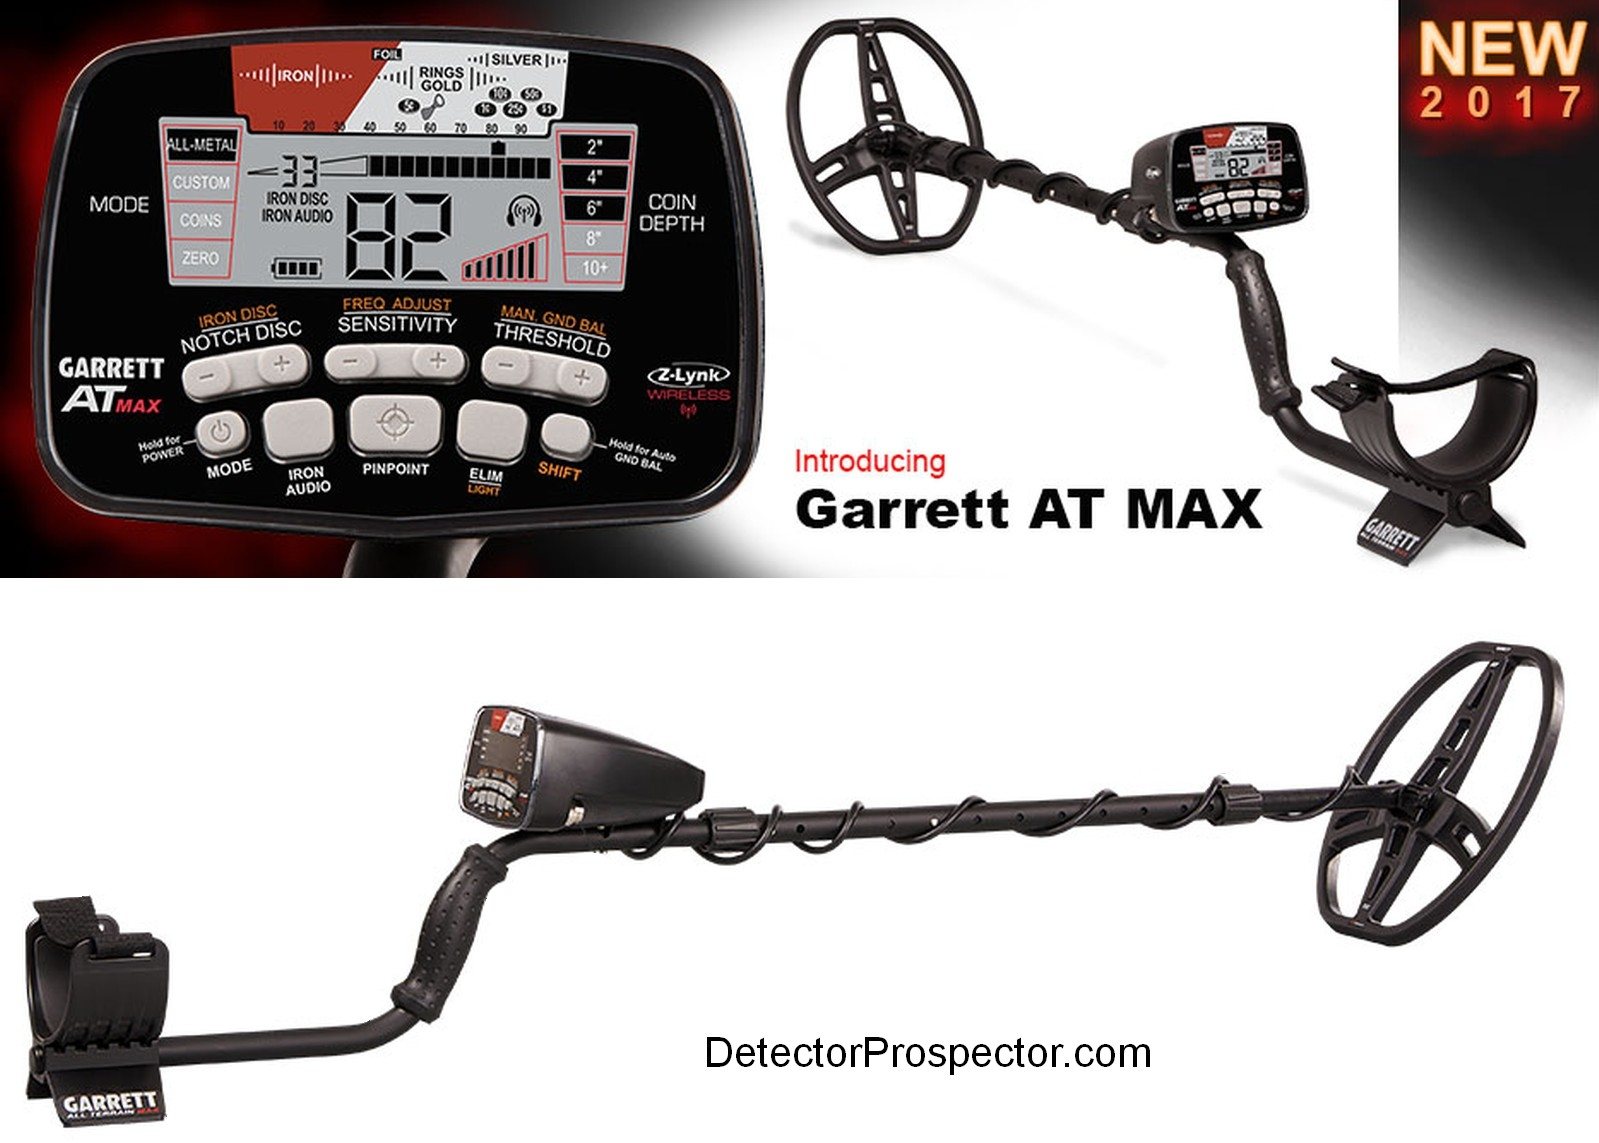 garrett-at-max-waterproof-metal-detector.jpg